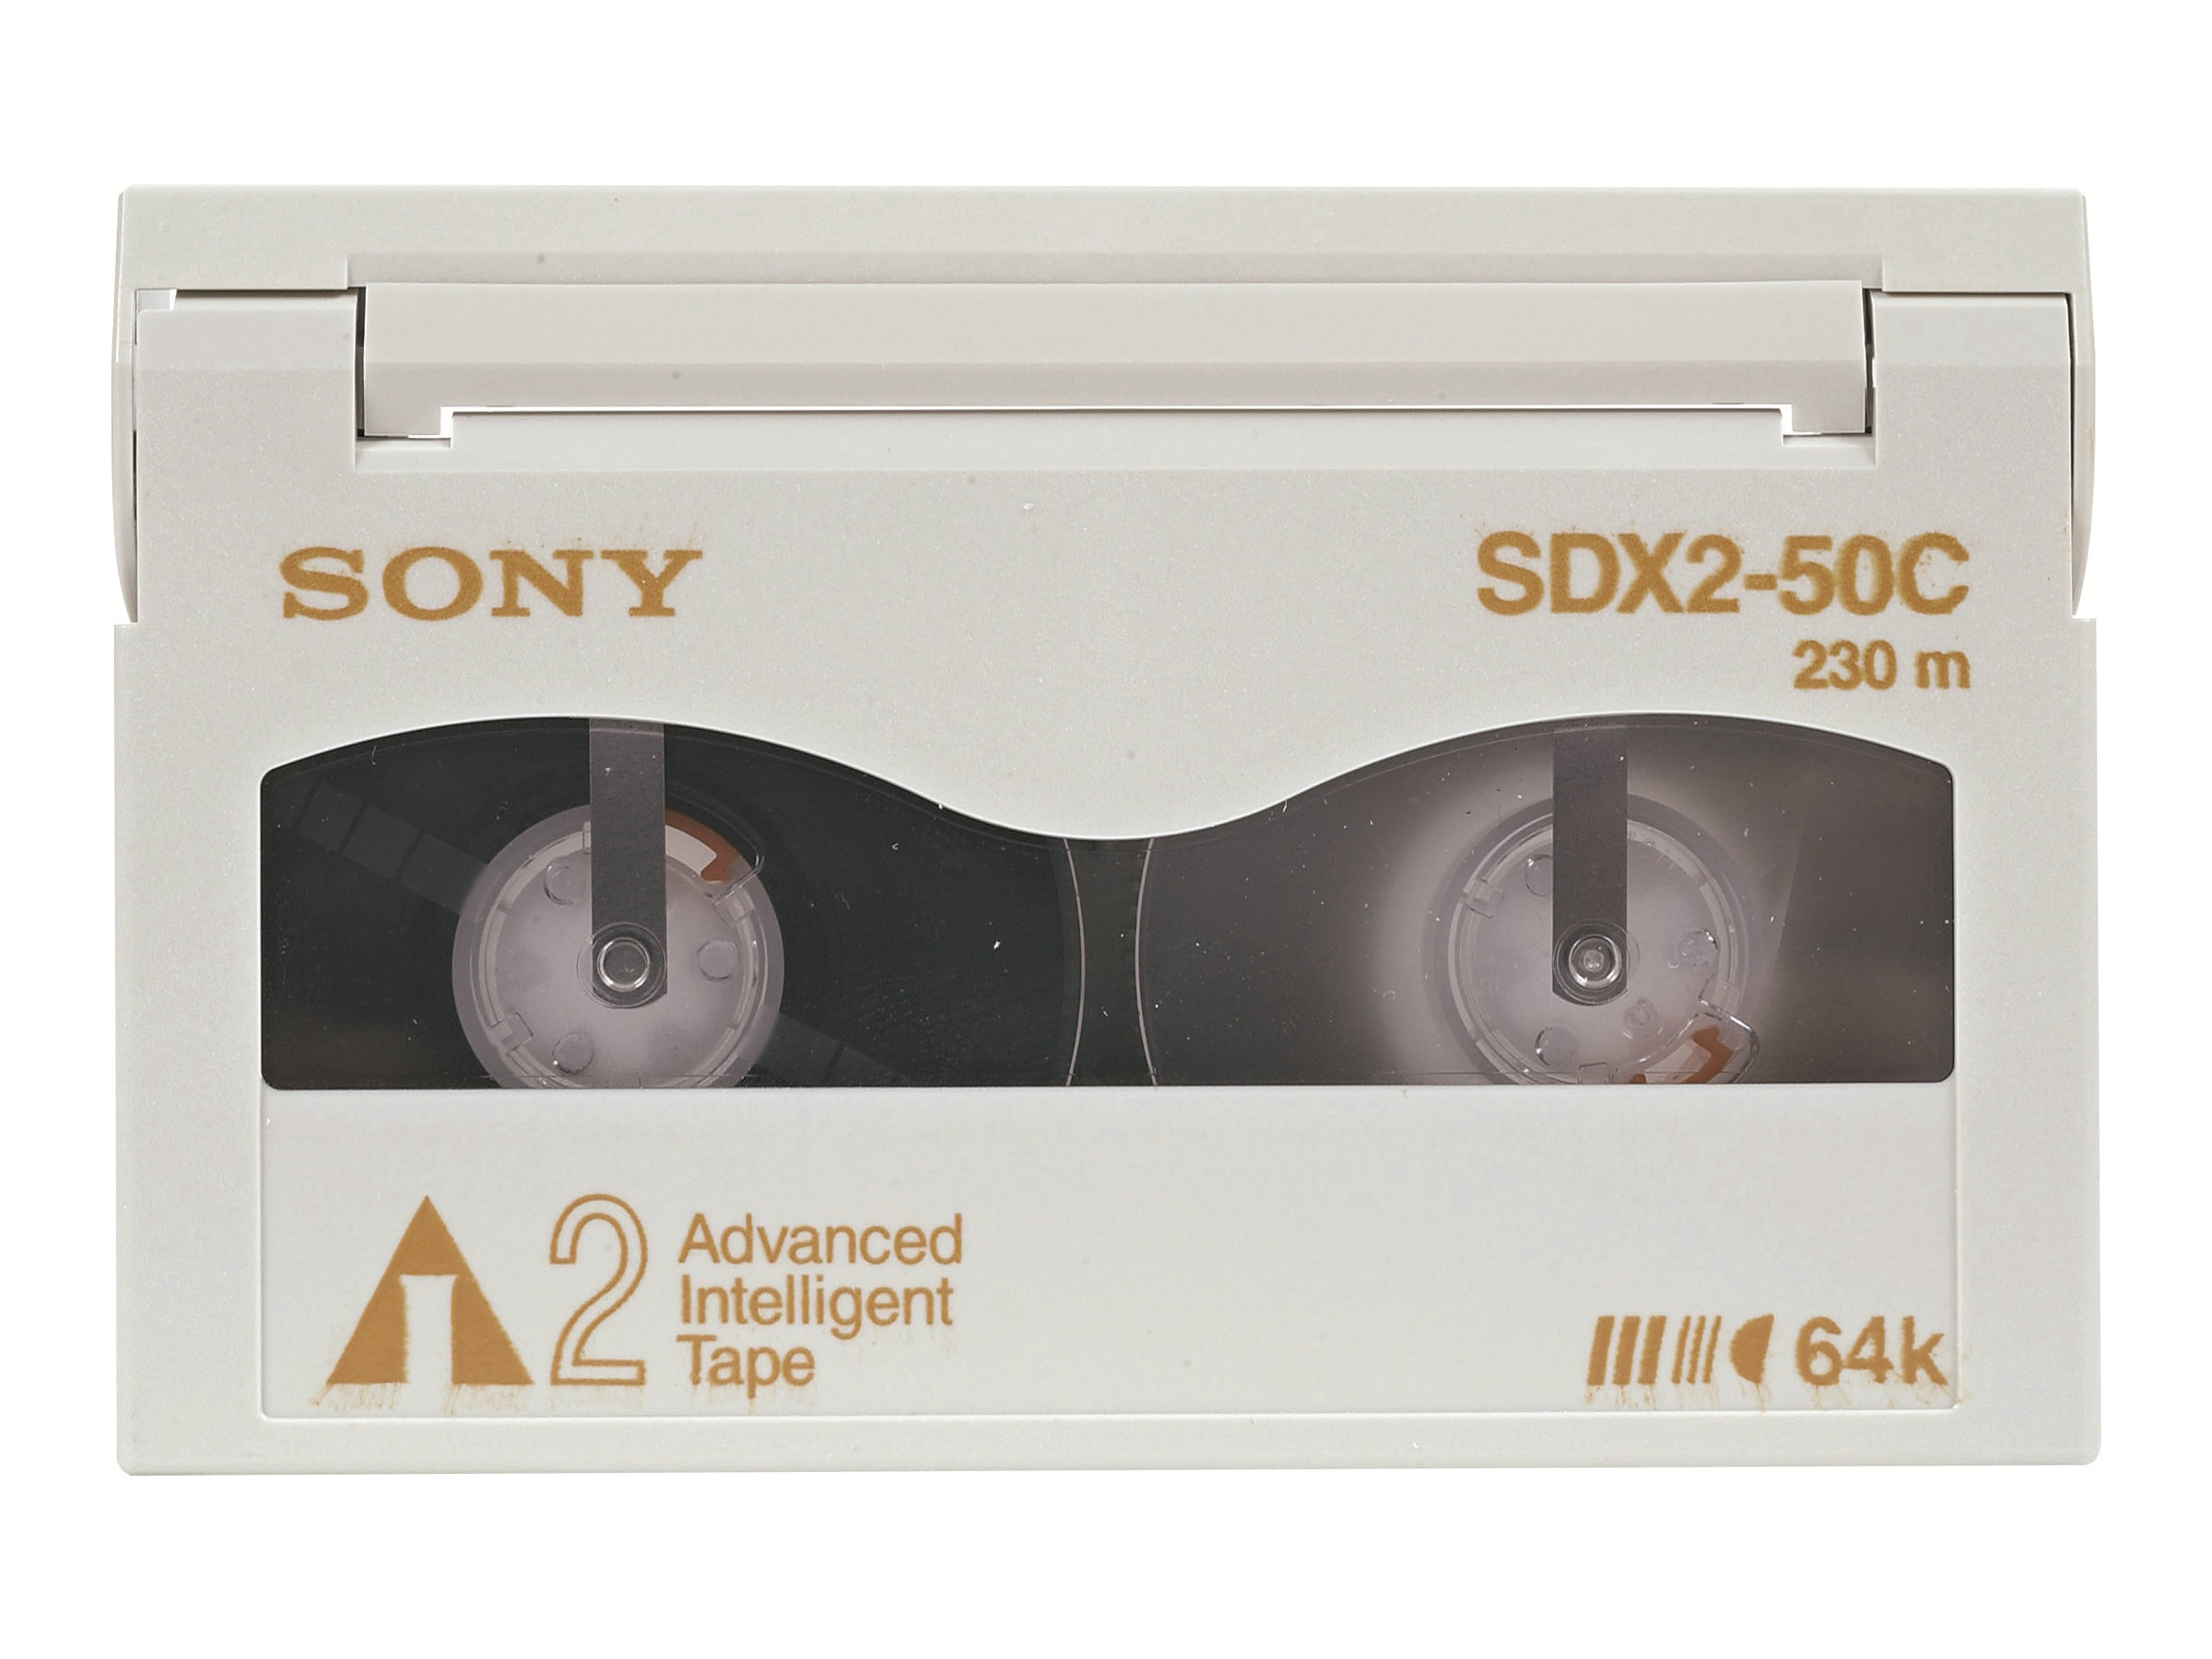 Sony 50 100GB AIT-2 8mm 230m Data Cartridge